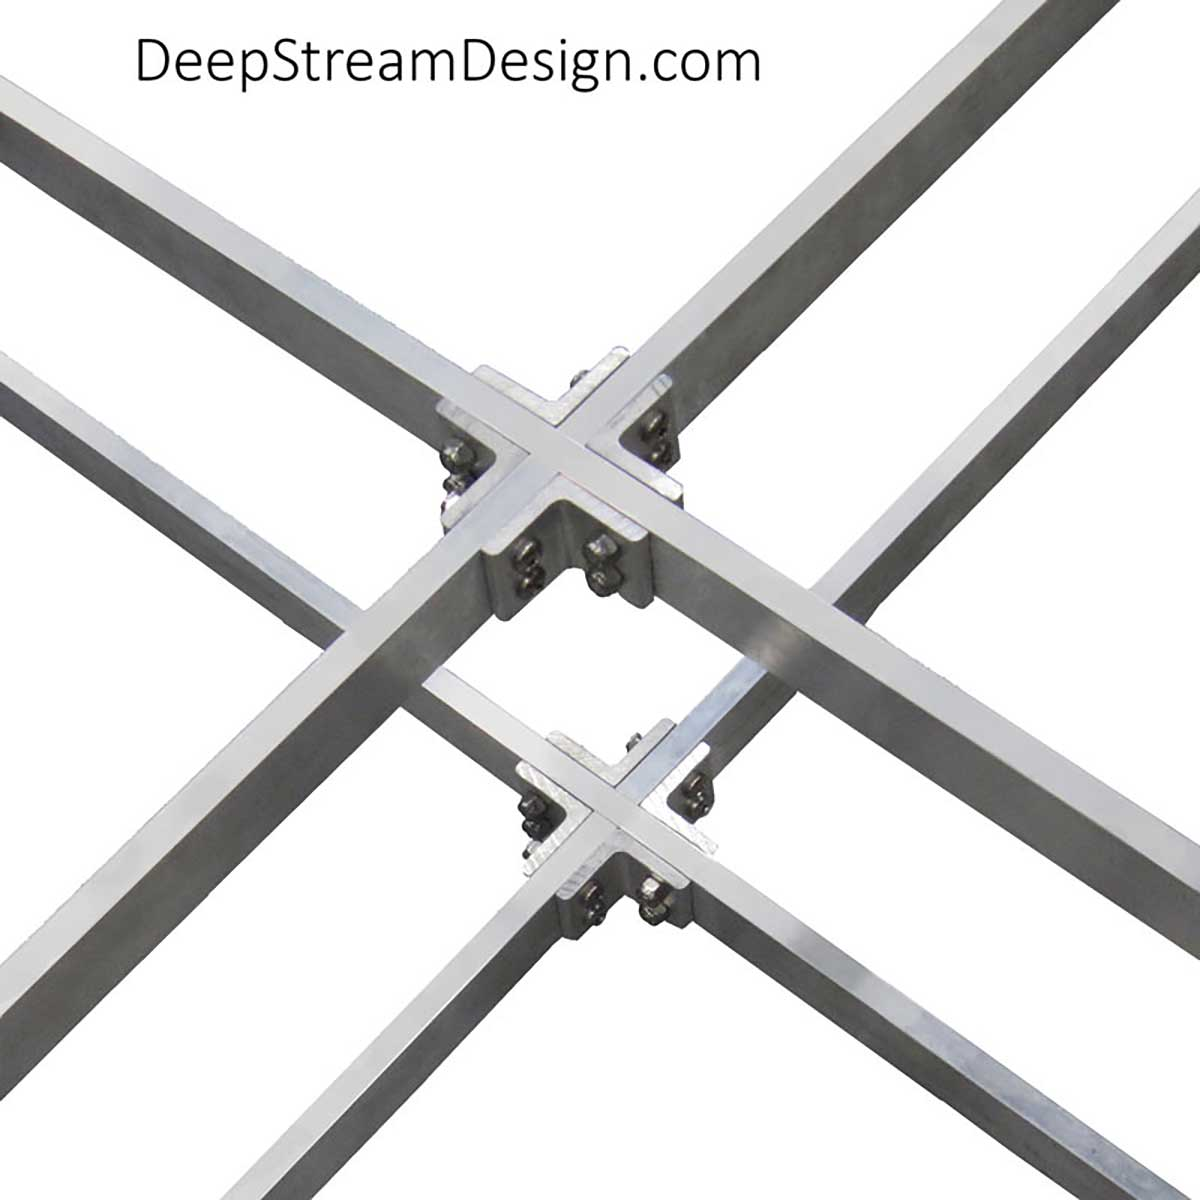 Studio photo showing the interconnection of a double layer of internal cross bracing used as structural reinforcement used with both the Audubon and Mariner Structural Architectural Aluminum Frame System primary extrusions.